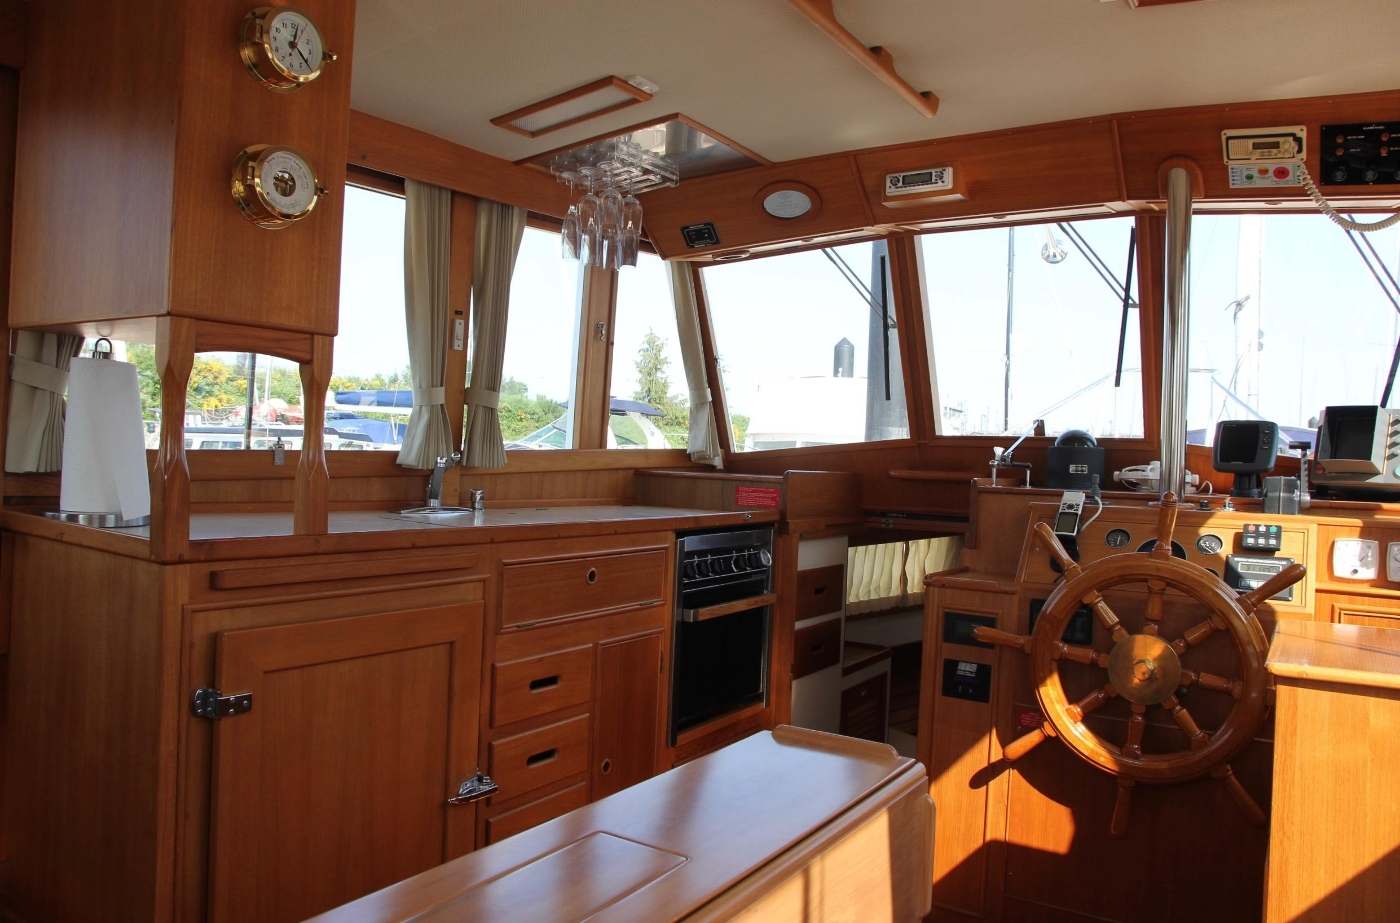 1995 Grand Banks 36 Classic, Galley and Helm